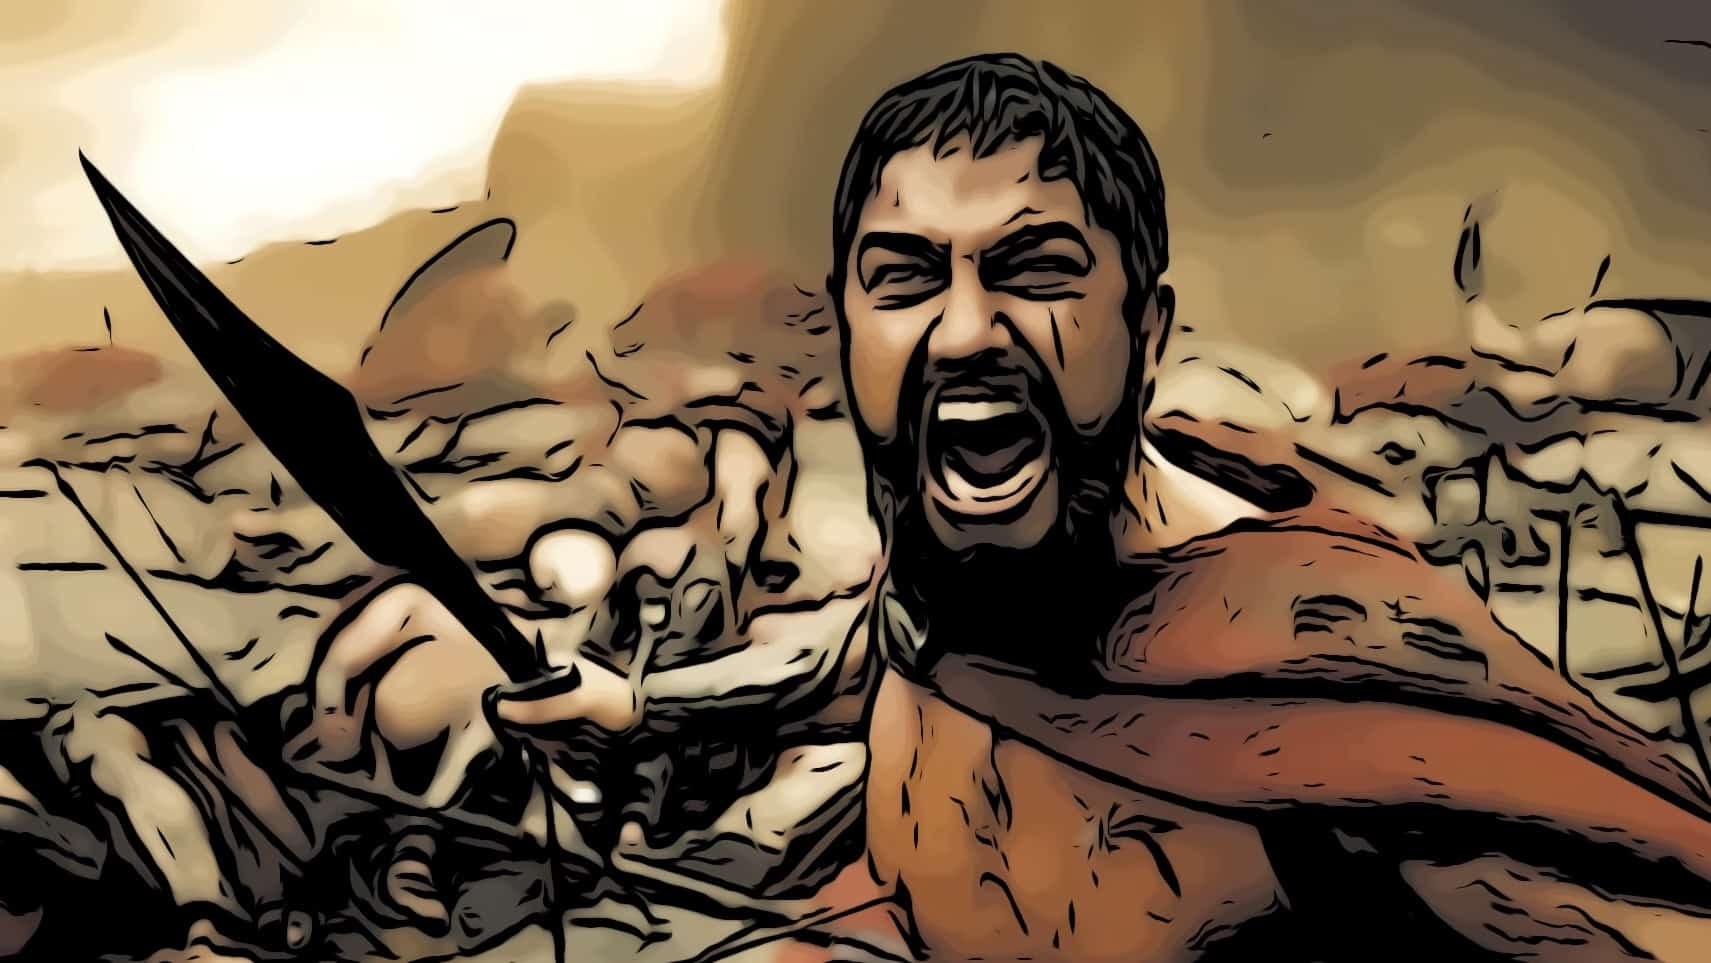 Scene in 300 for best greek mythology movies post.